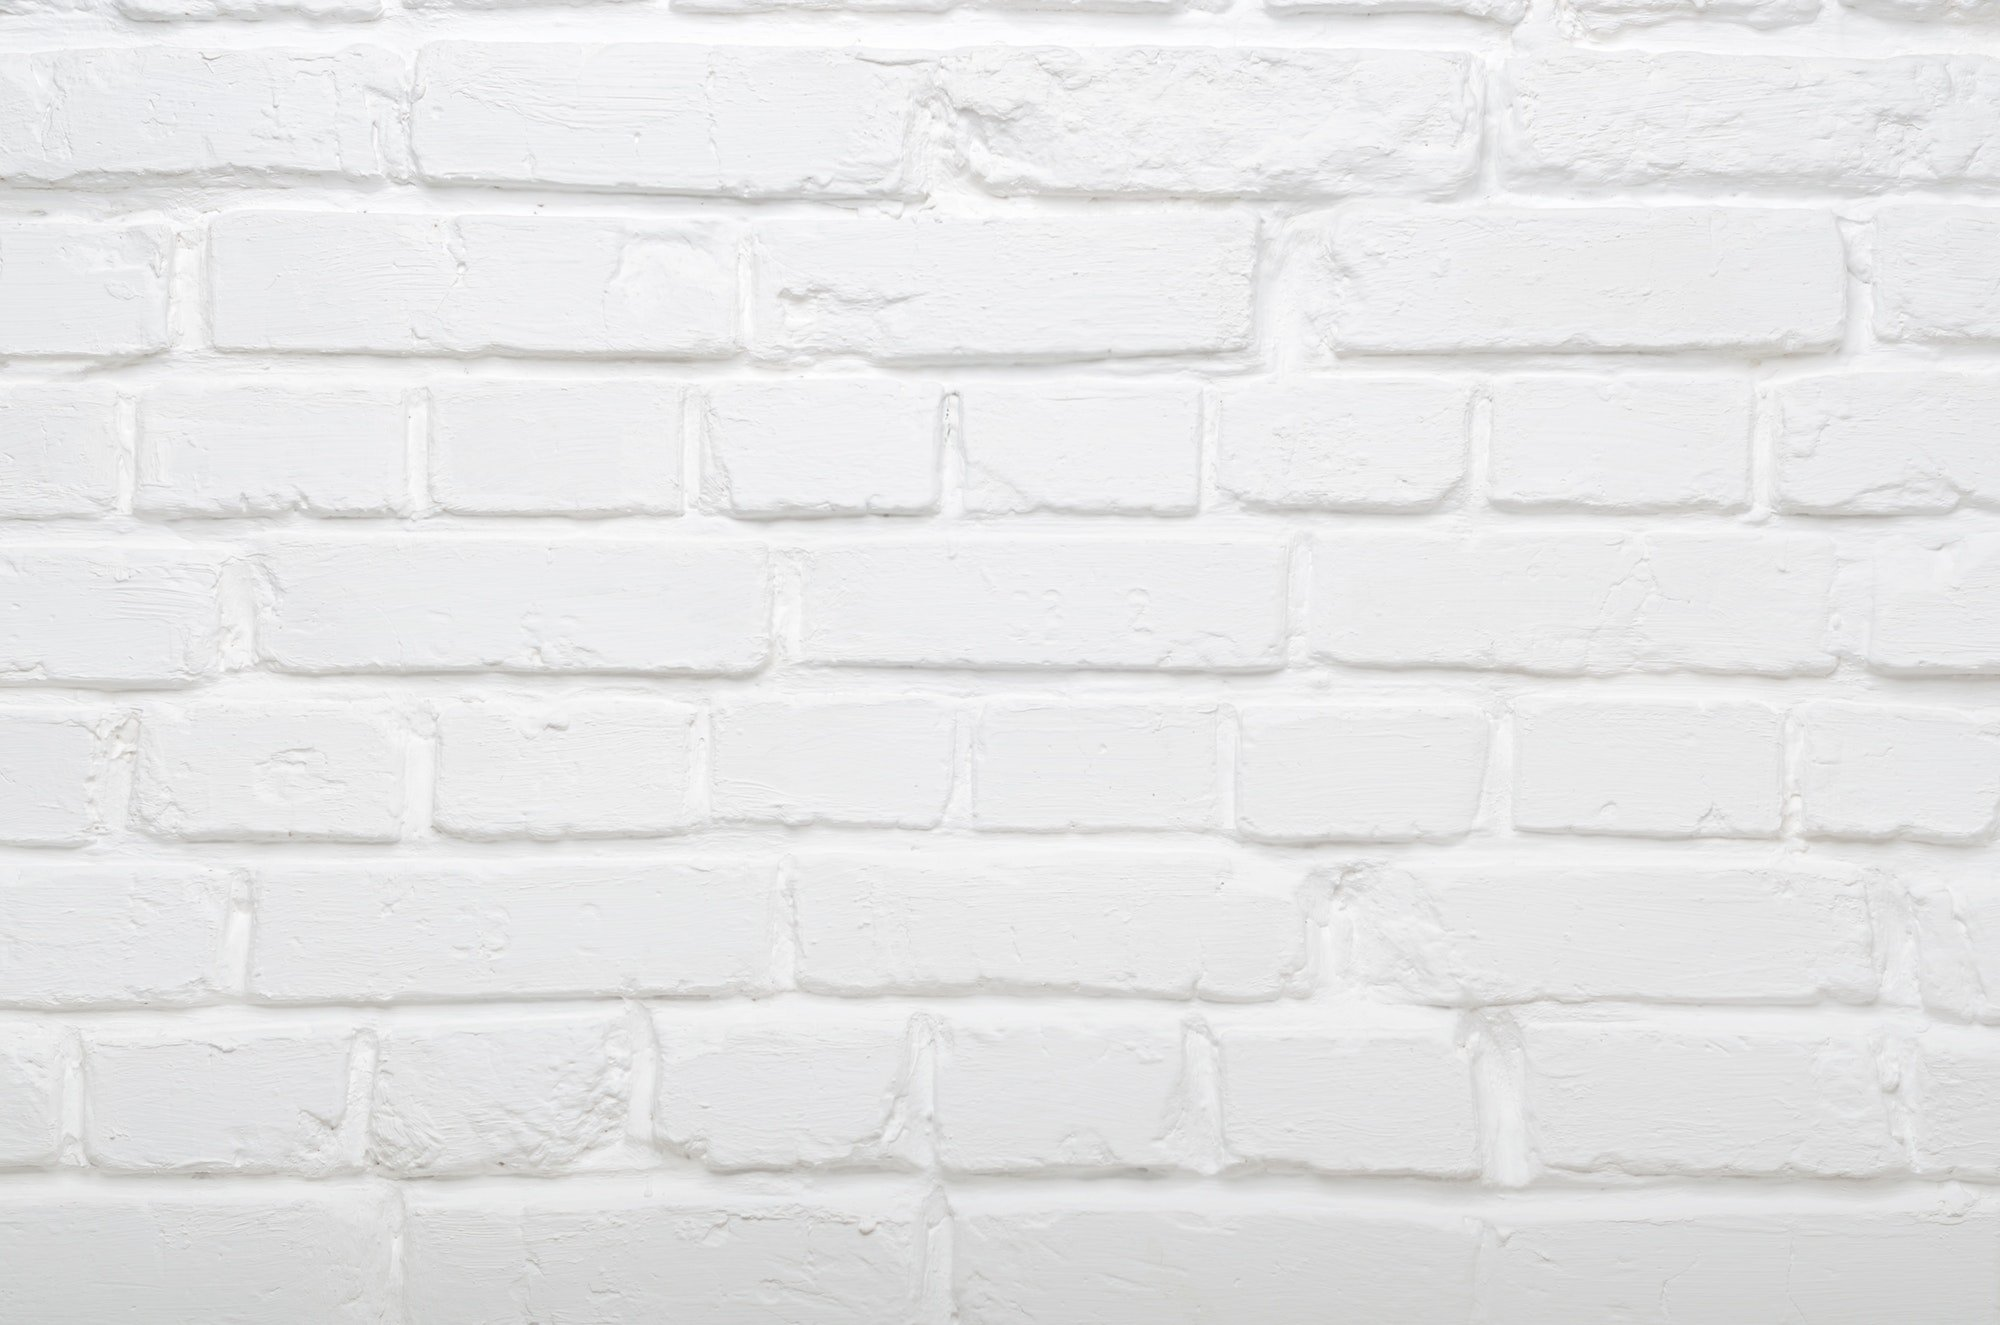 White painted authentic brick wall background